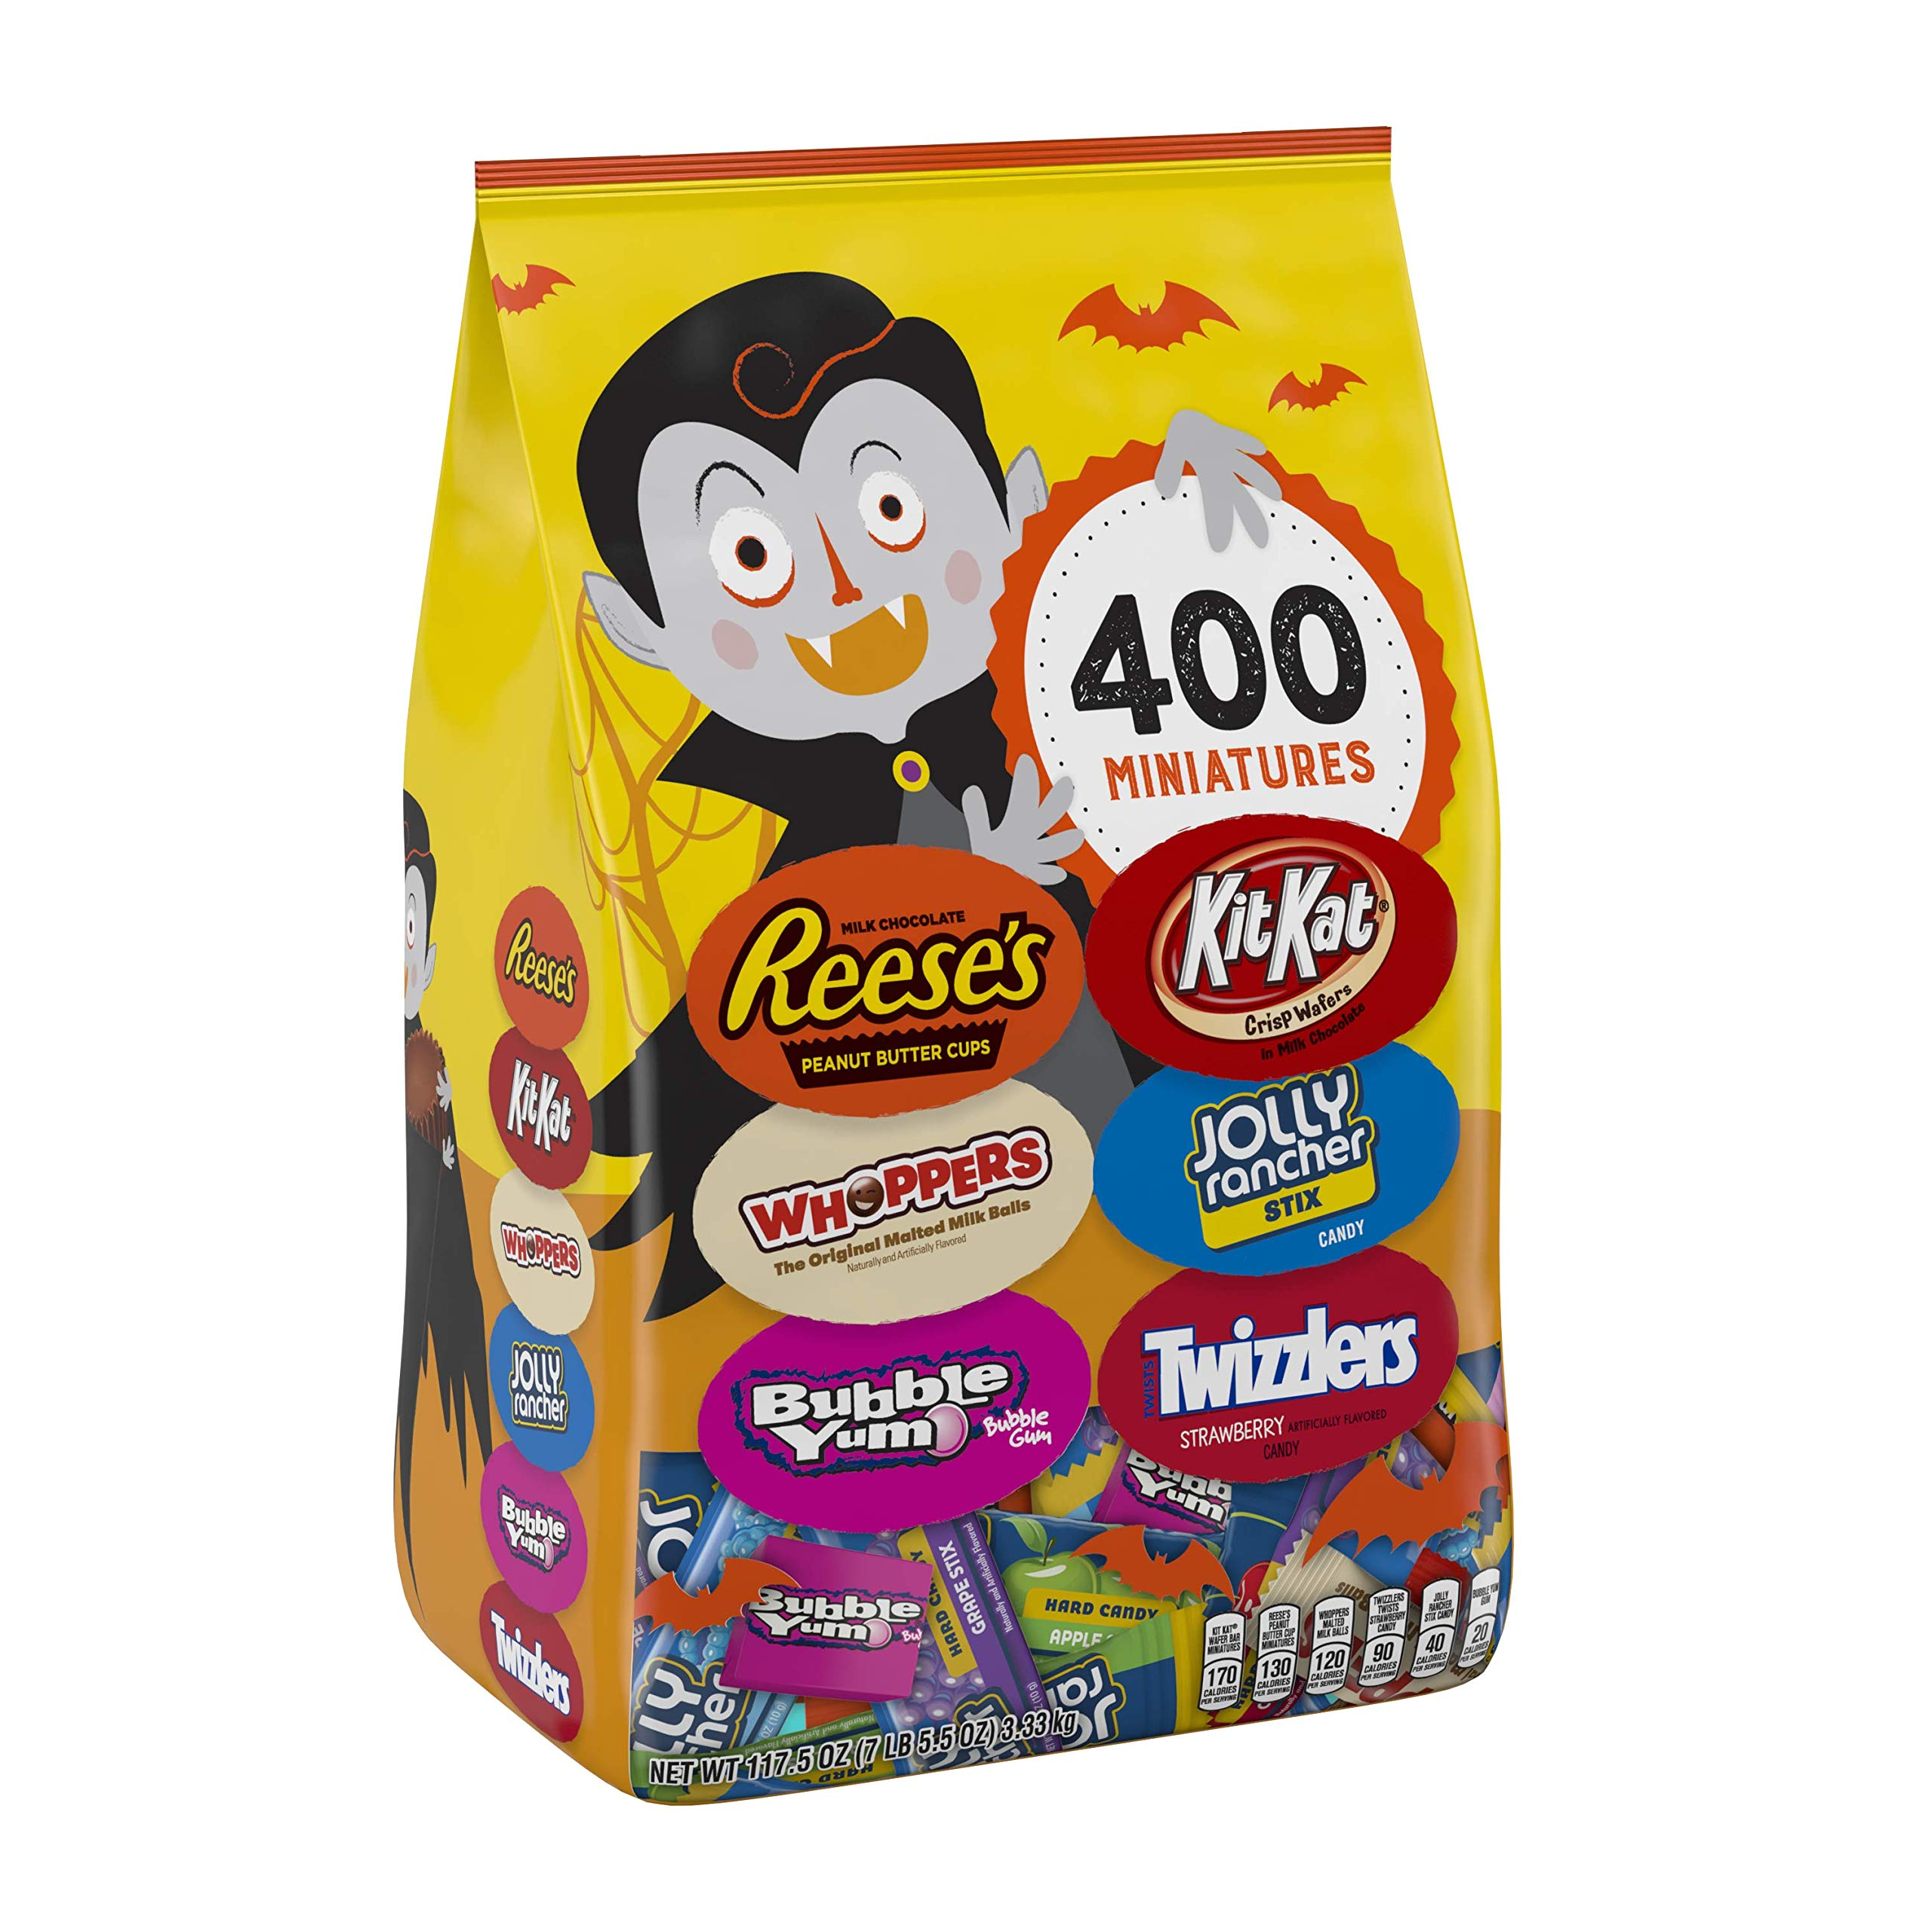 HERSHEY'S Bulk Halloween Candy Variety Mix (REESE'S, KIT KAT, WHOPPERS, BUBBLE YUM, JOLLY RANCHER, TWIZZLERS), 400 pieces, 7lb bag